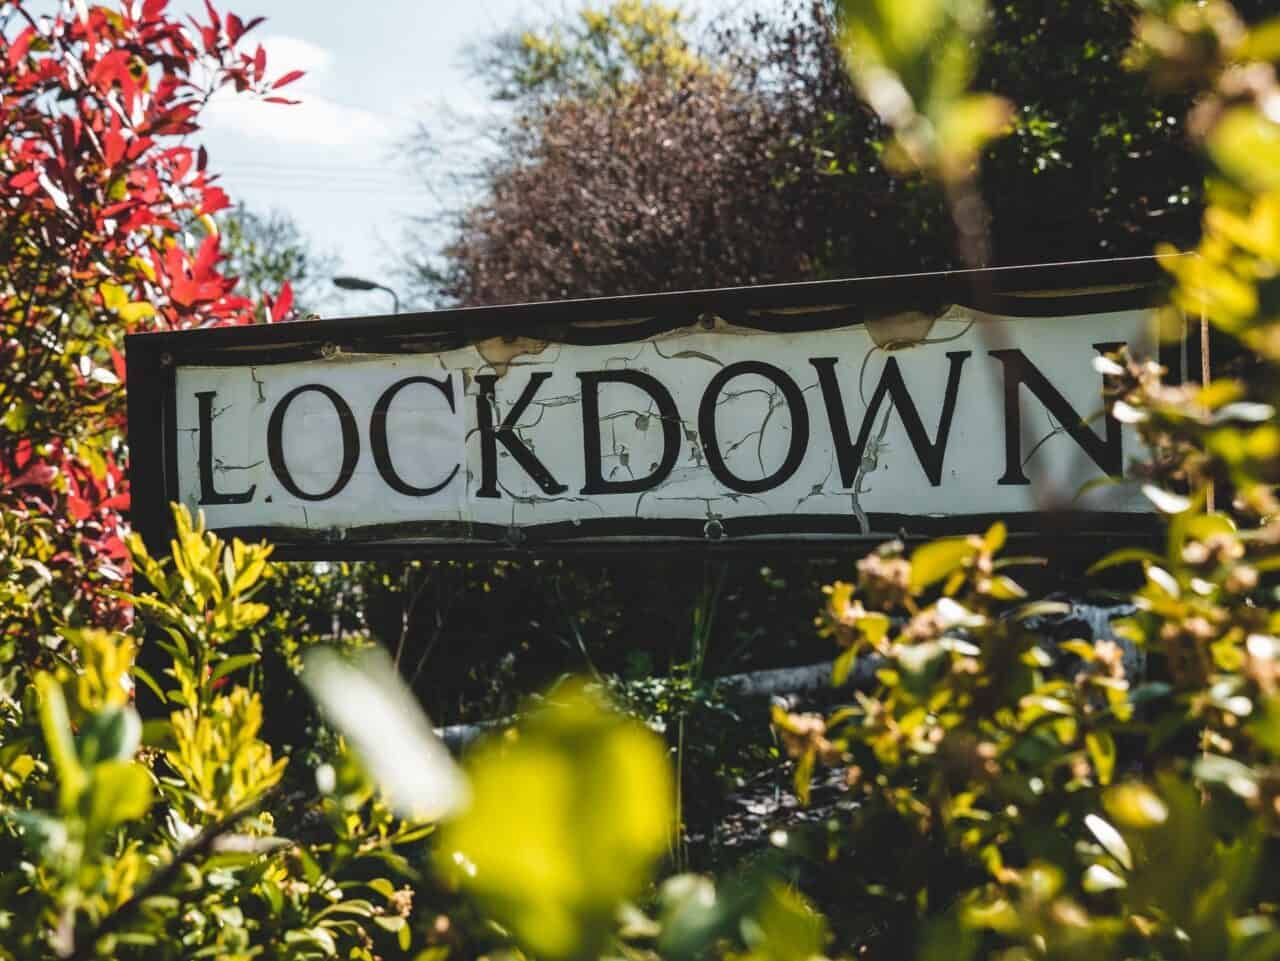 lockdown street sign with foliage